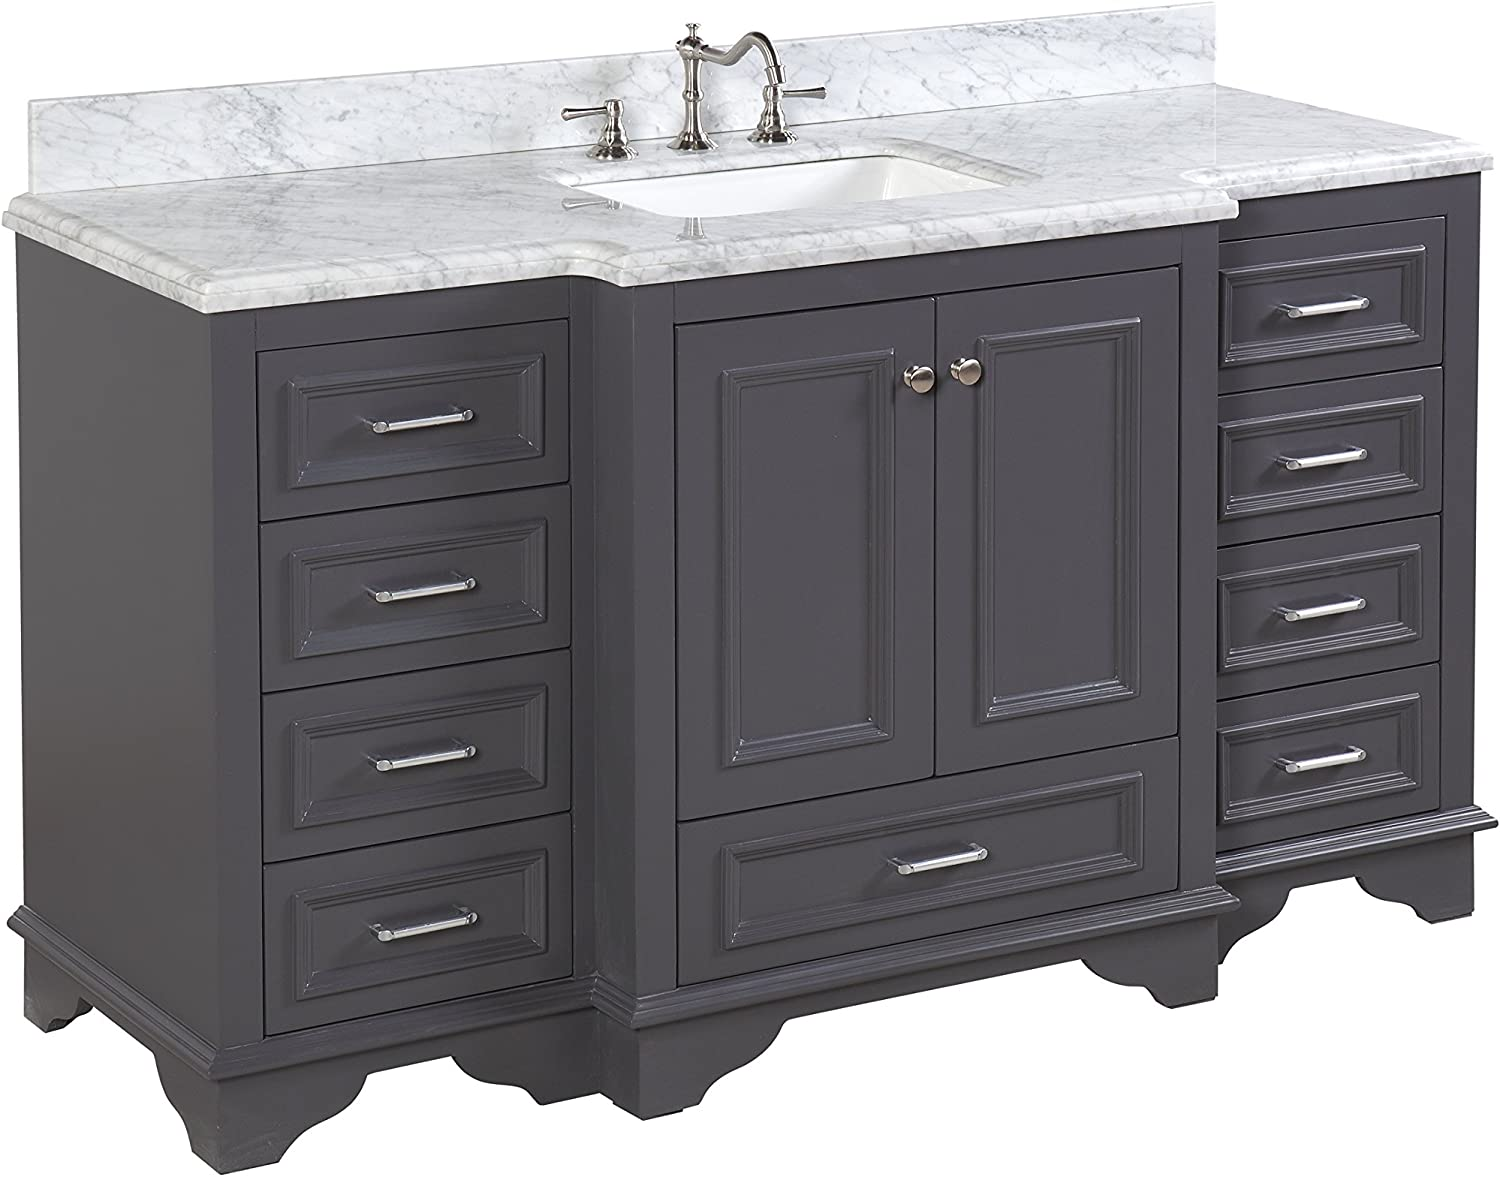 Nantucket 60-inch Single Bathroom Vanity Carrara Charcoal Gray Includes Charcoal Gray Cabinet with Soft Close Drawers Self Closing Doors, Italian Carrara Marble Top, and White Ceramic Sink